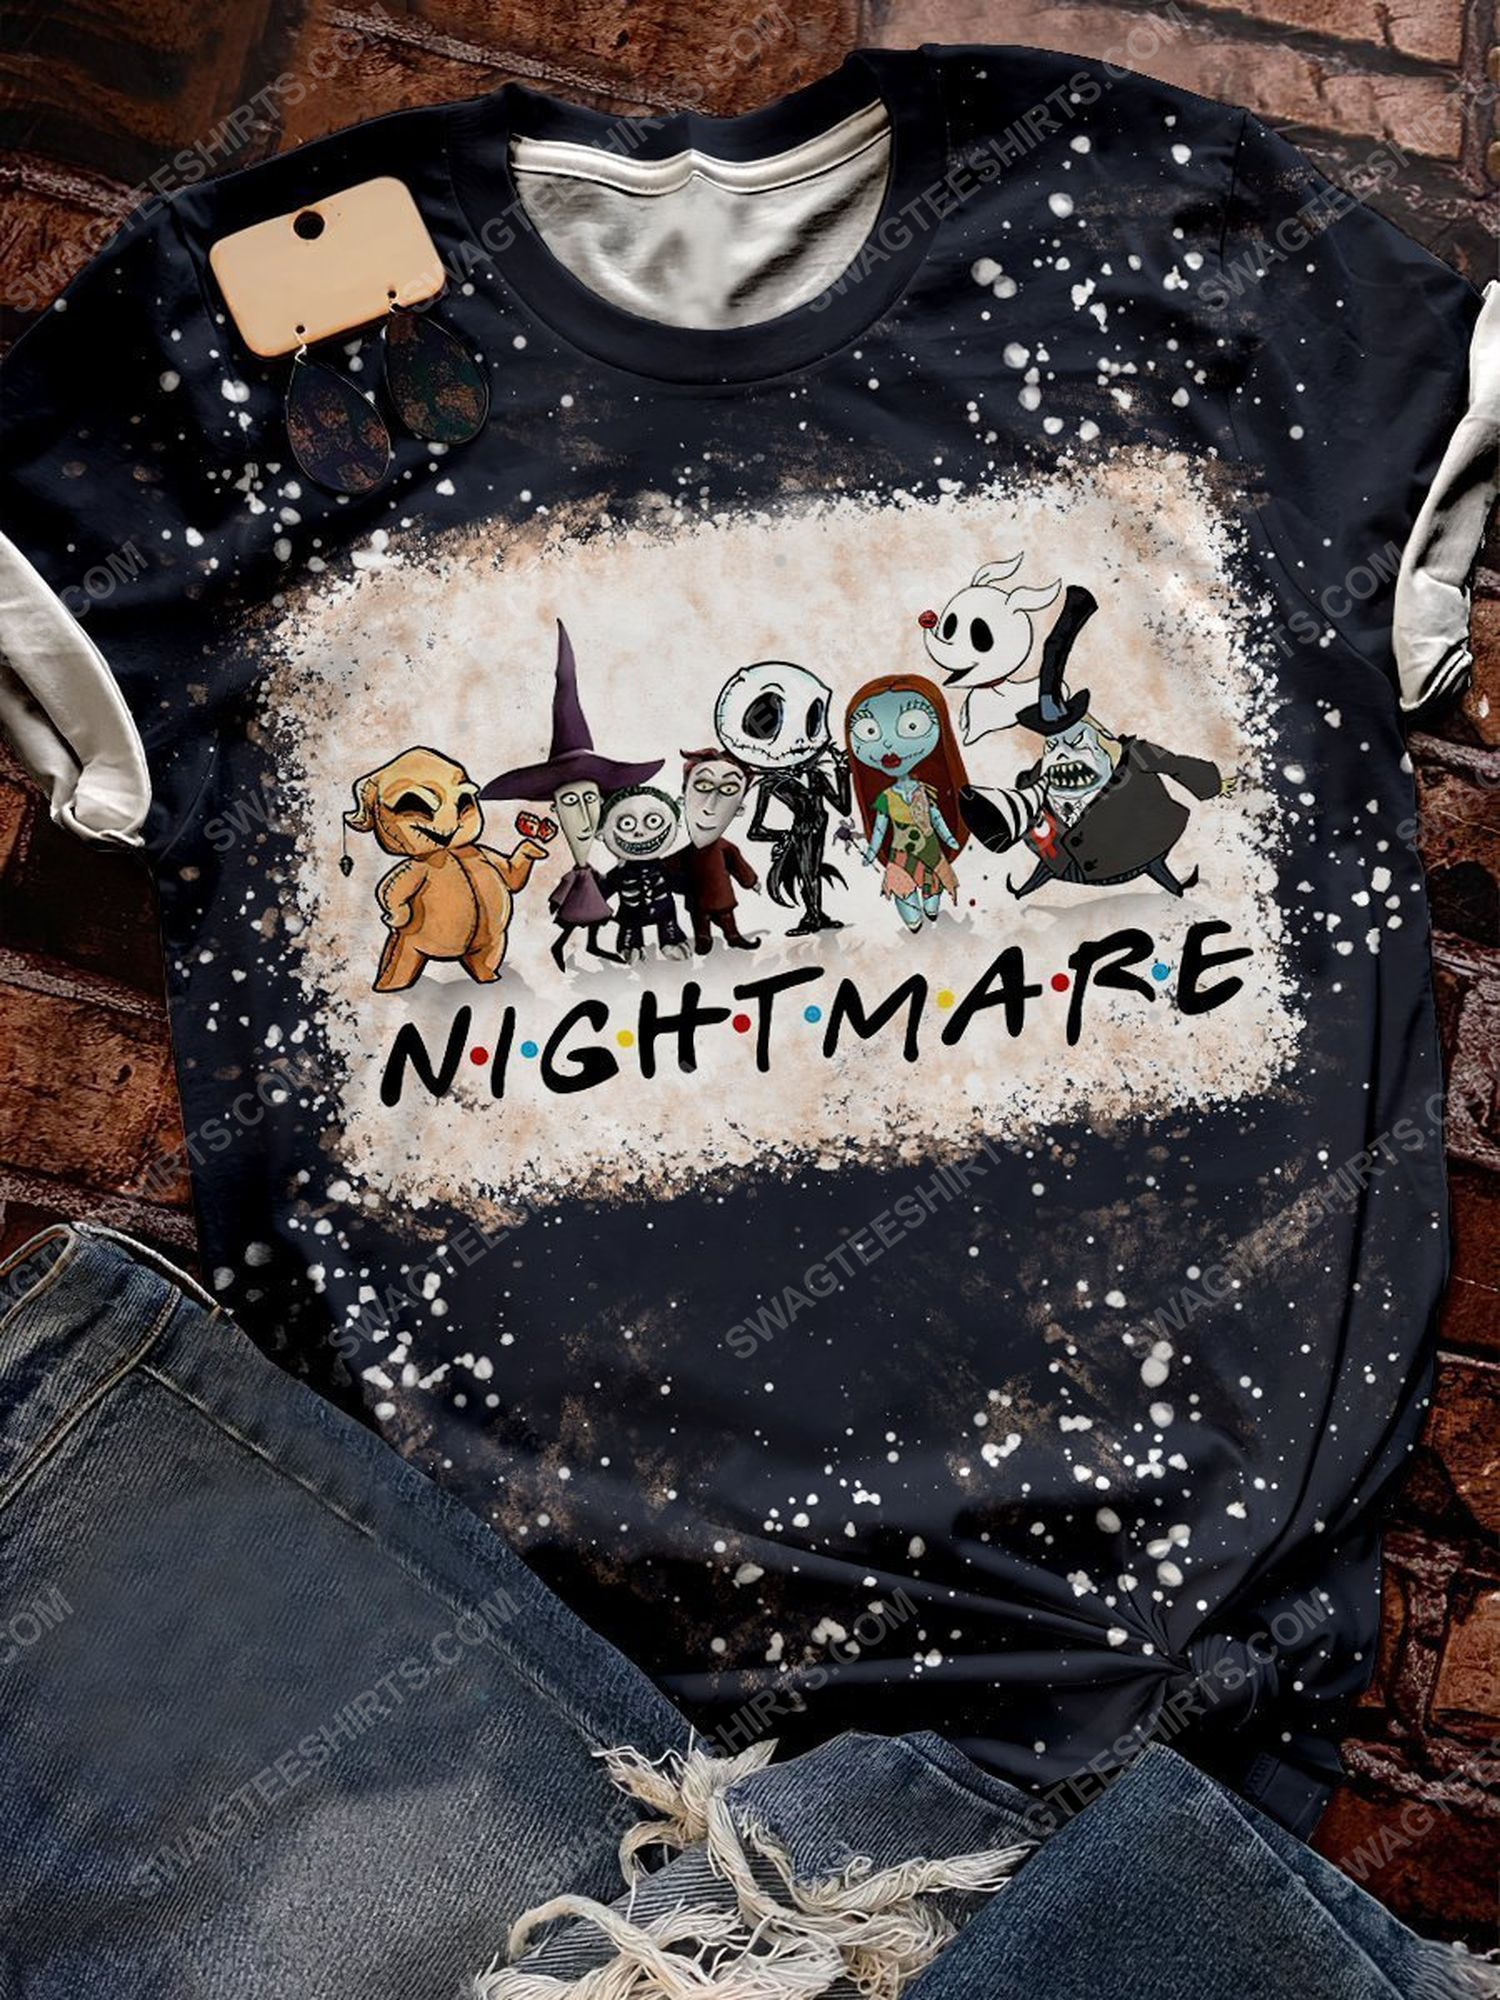 The nightmare before christmas bleached shirt 1 - Copy (2)